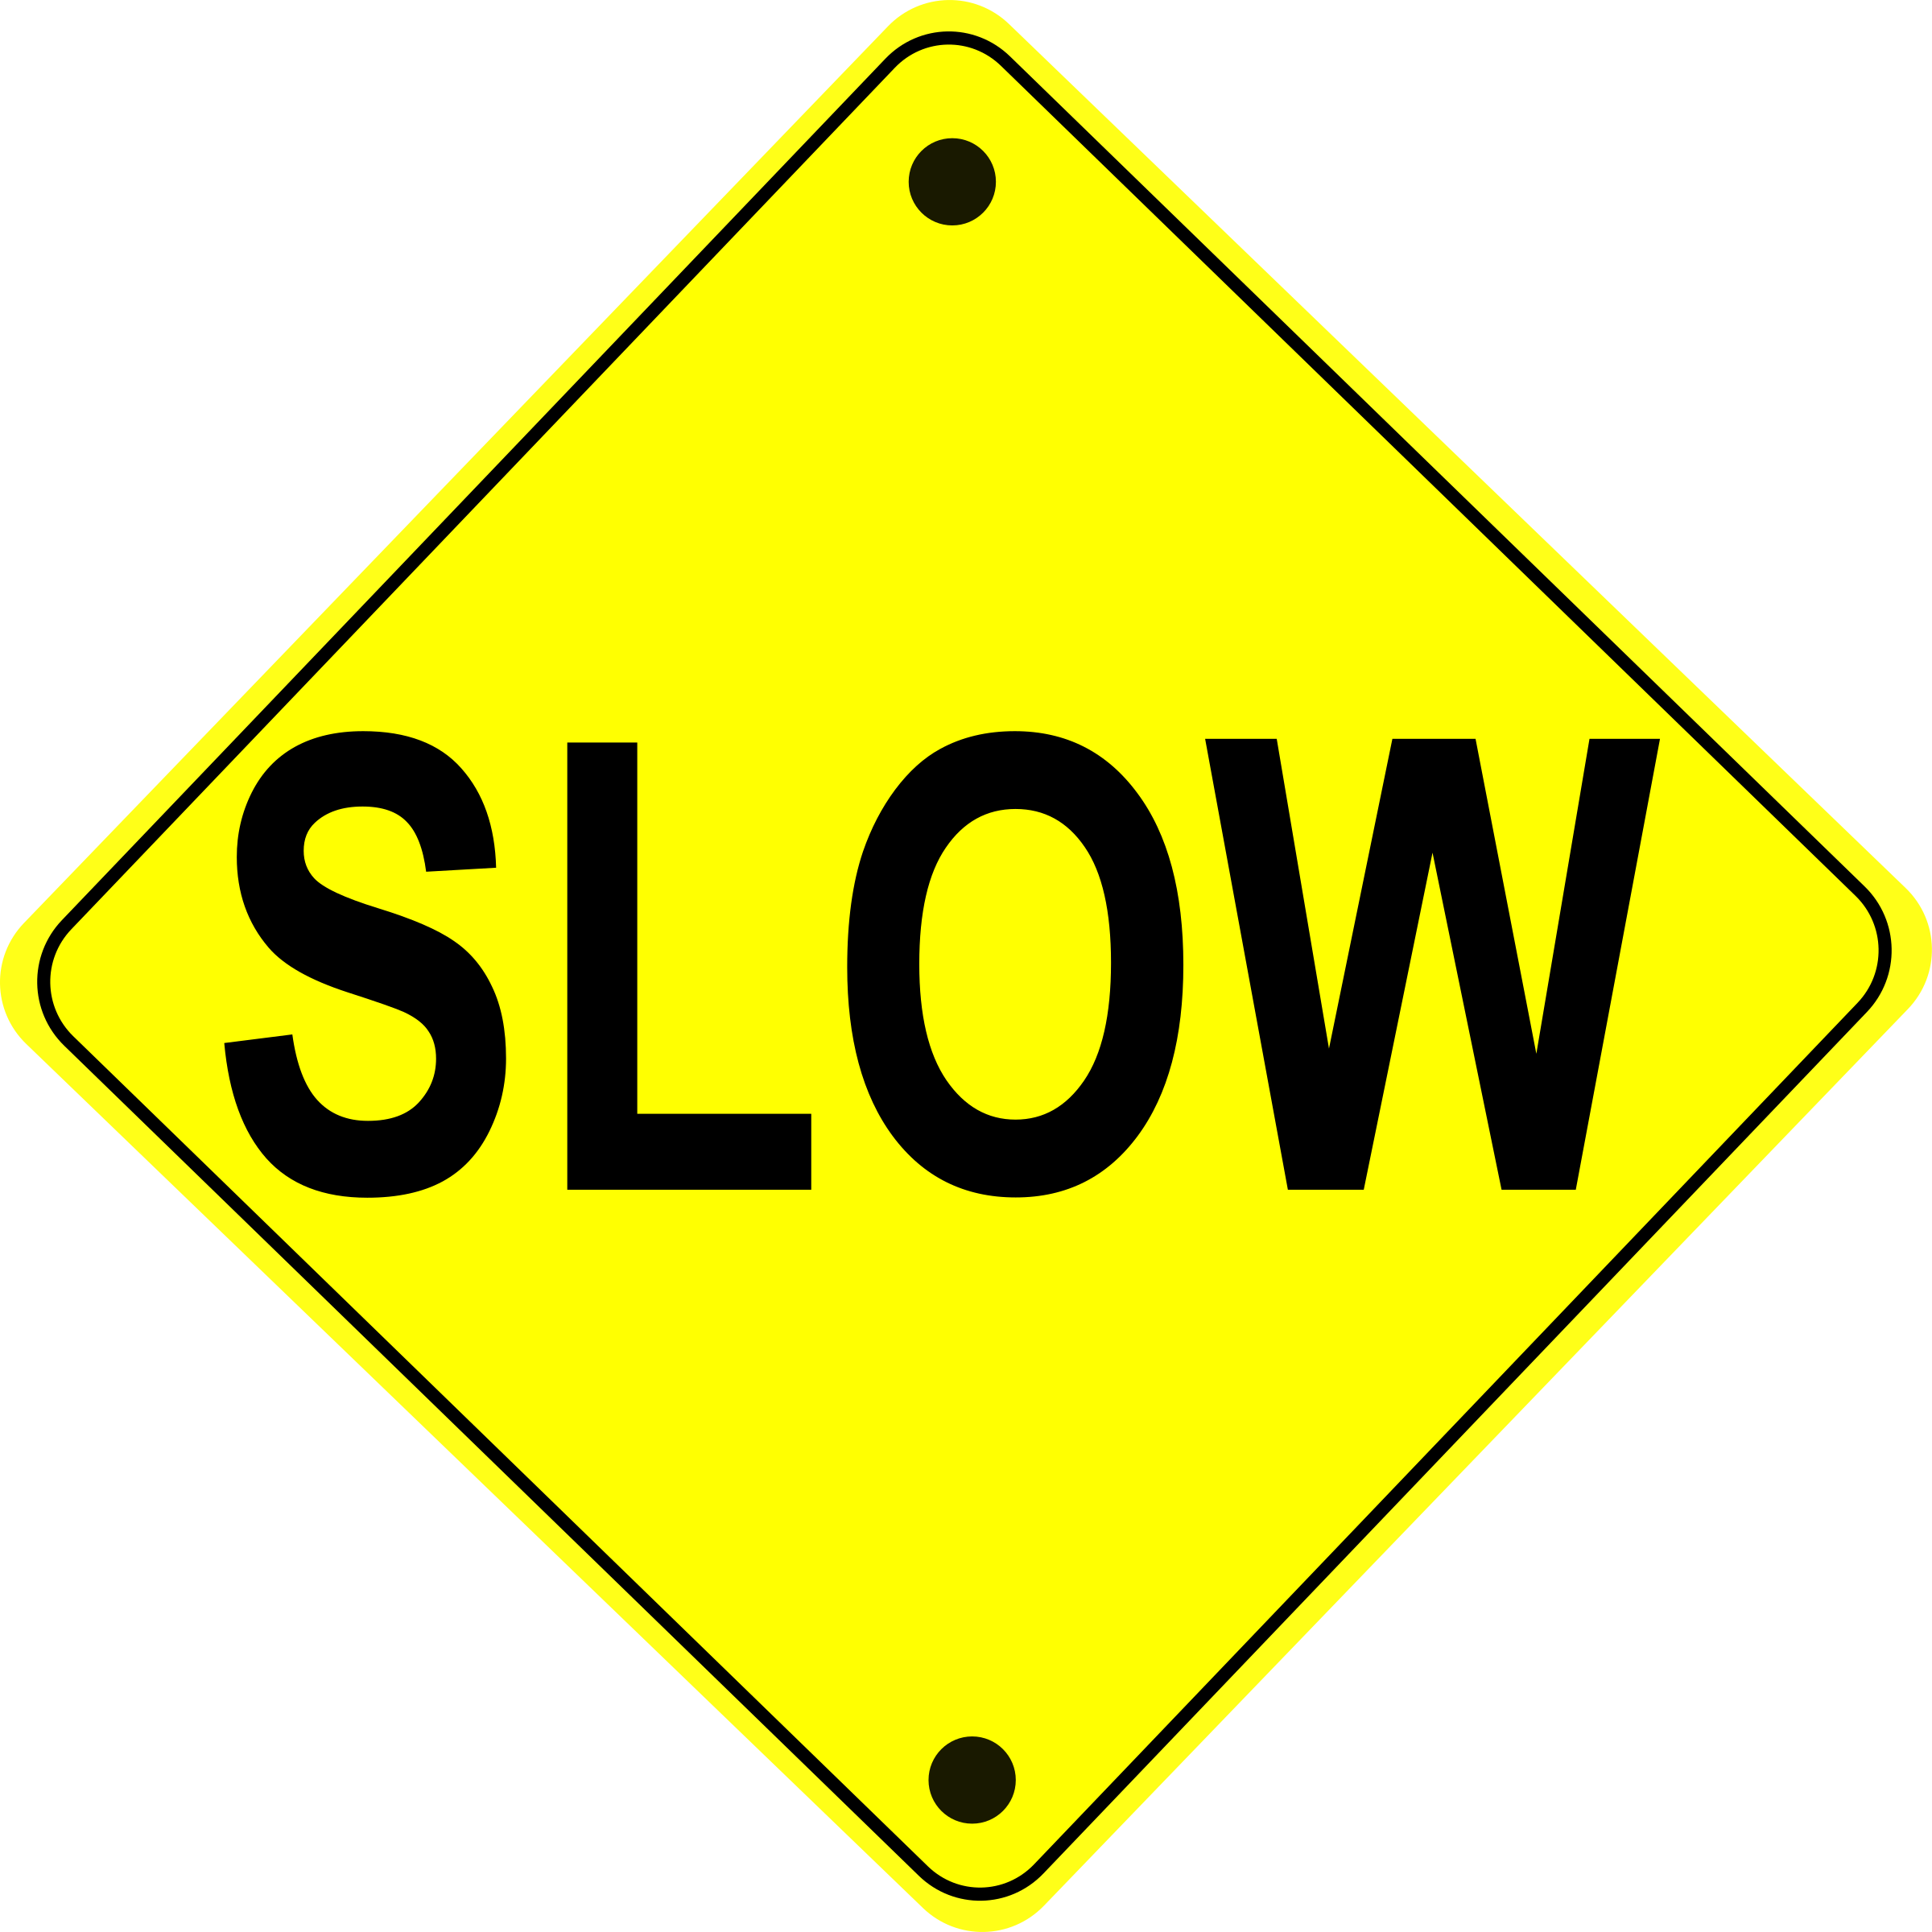 Slow Road Sign by schoolfreeware